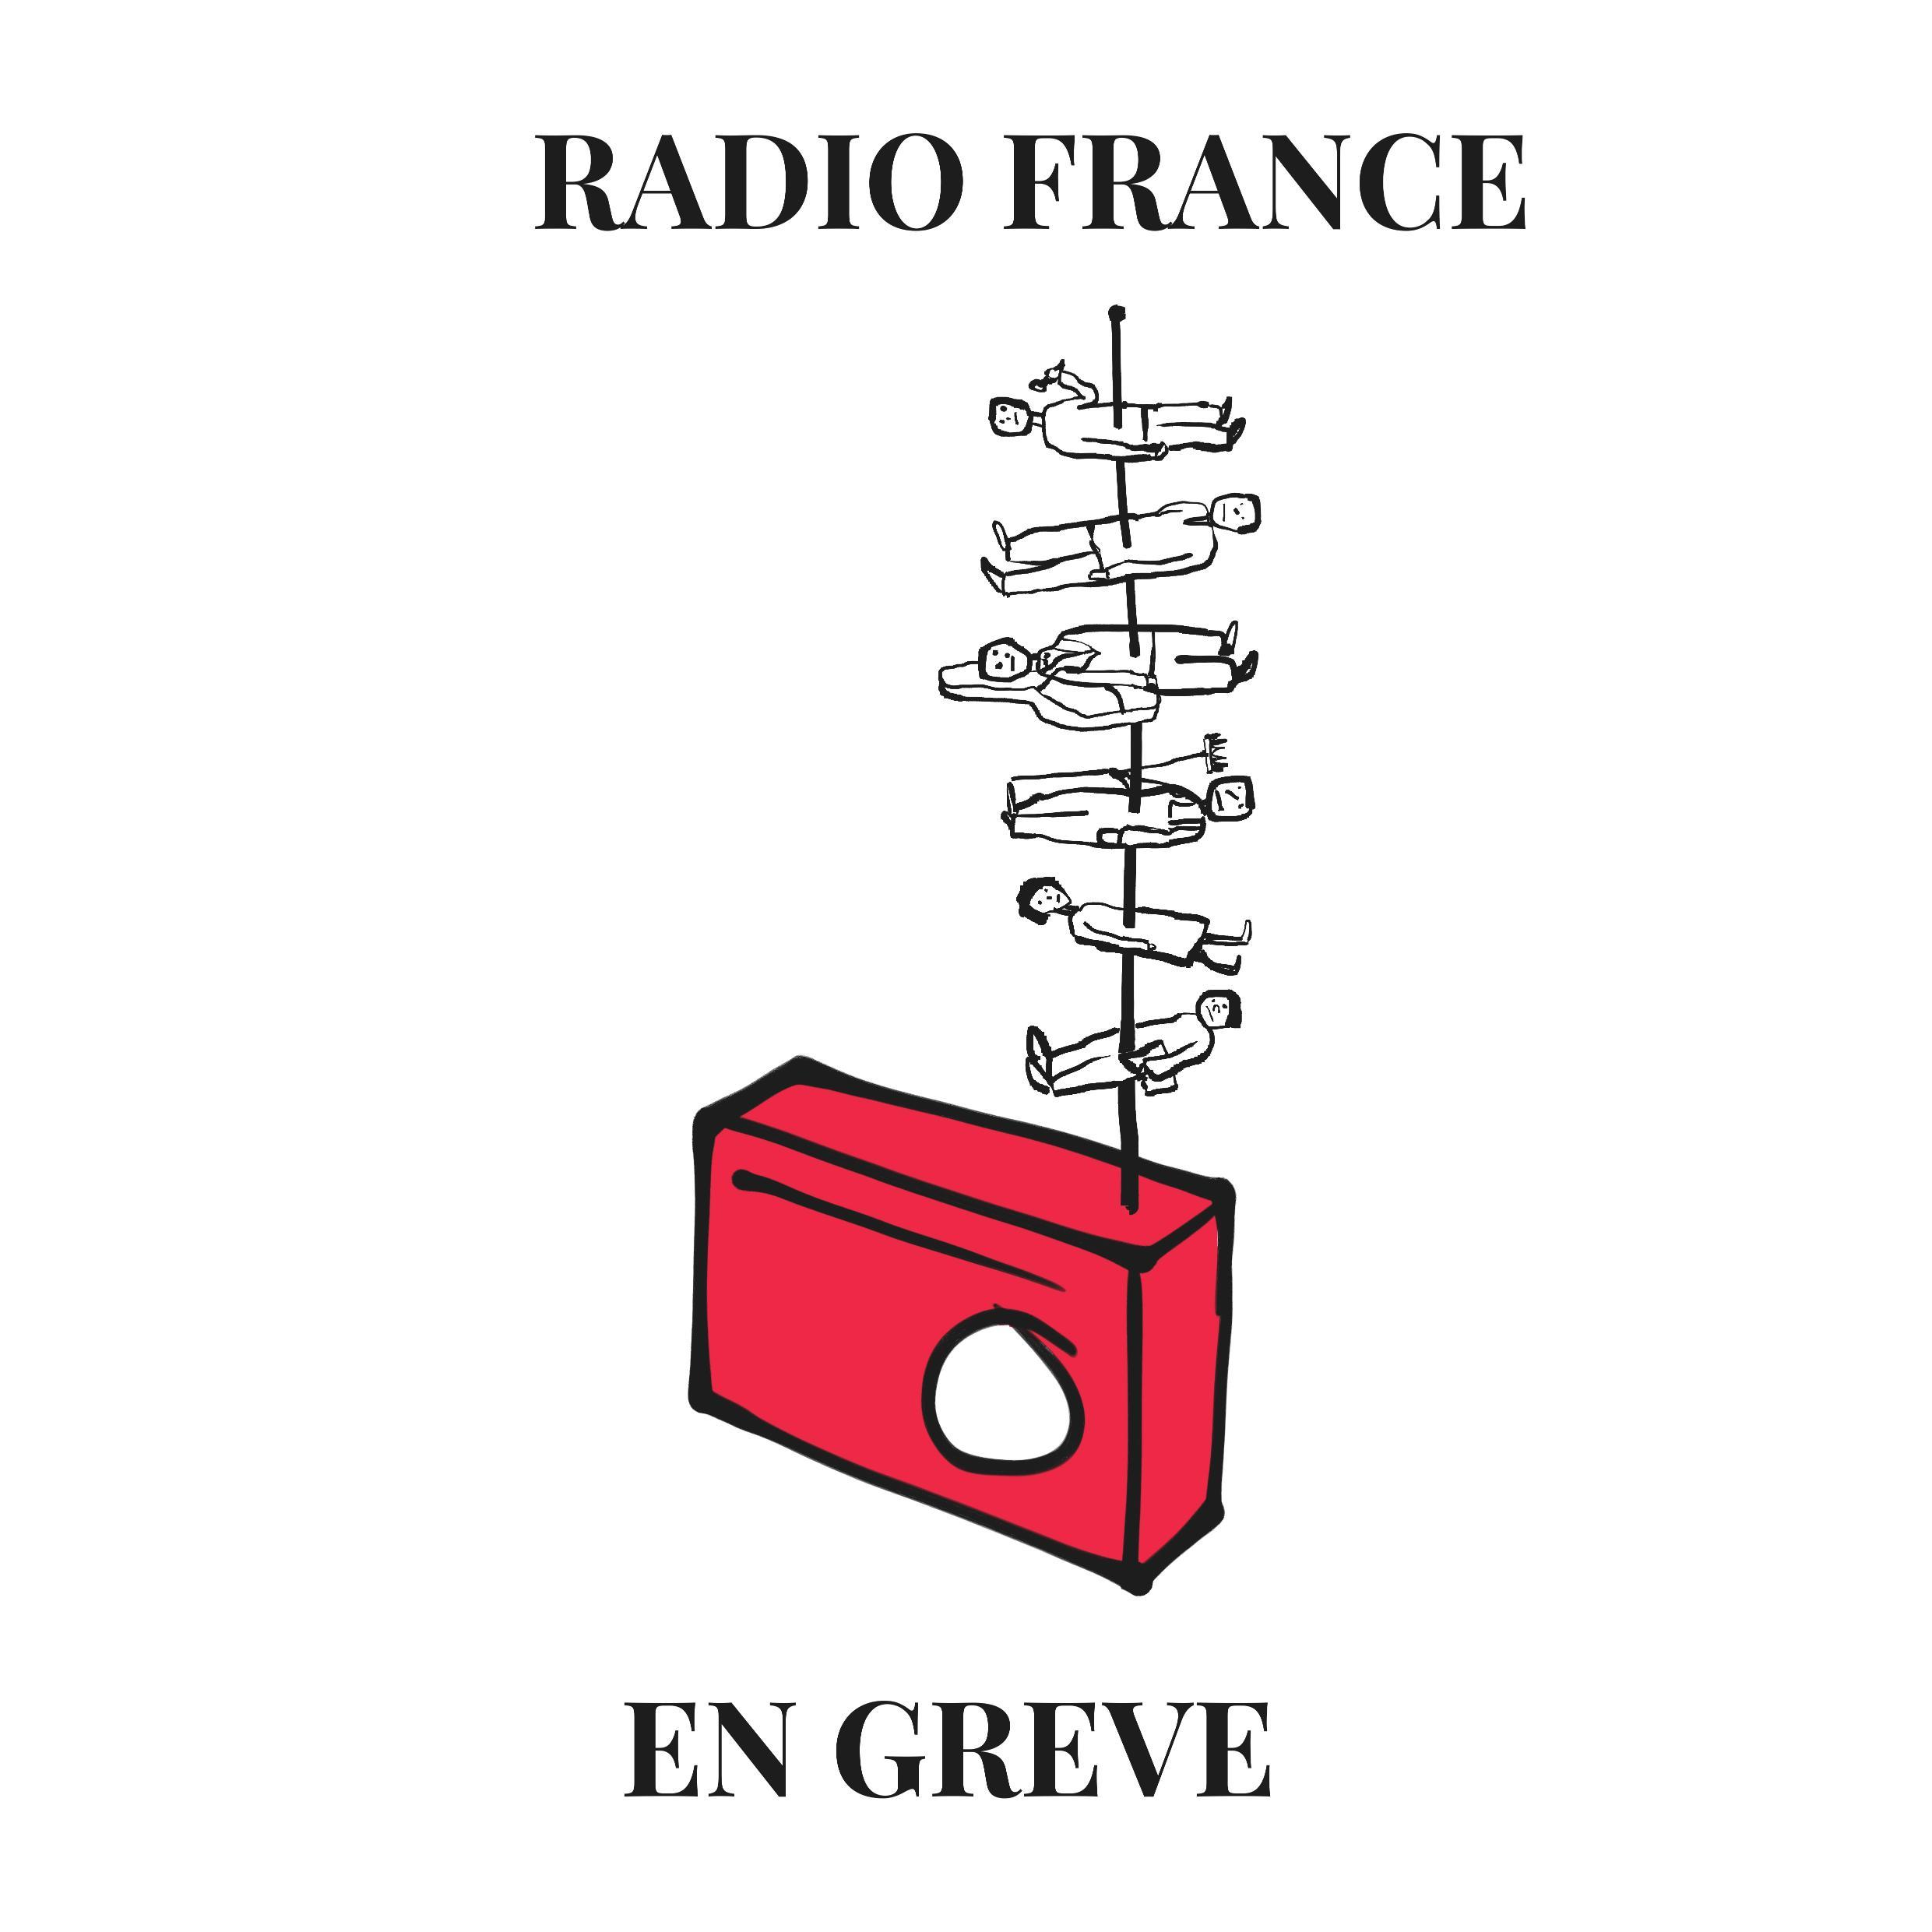 Grève reconduite à Radio France